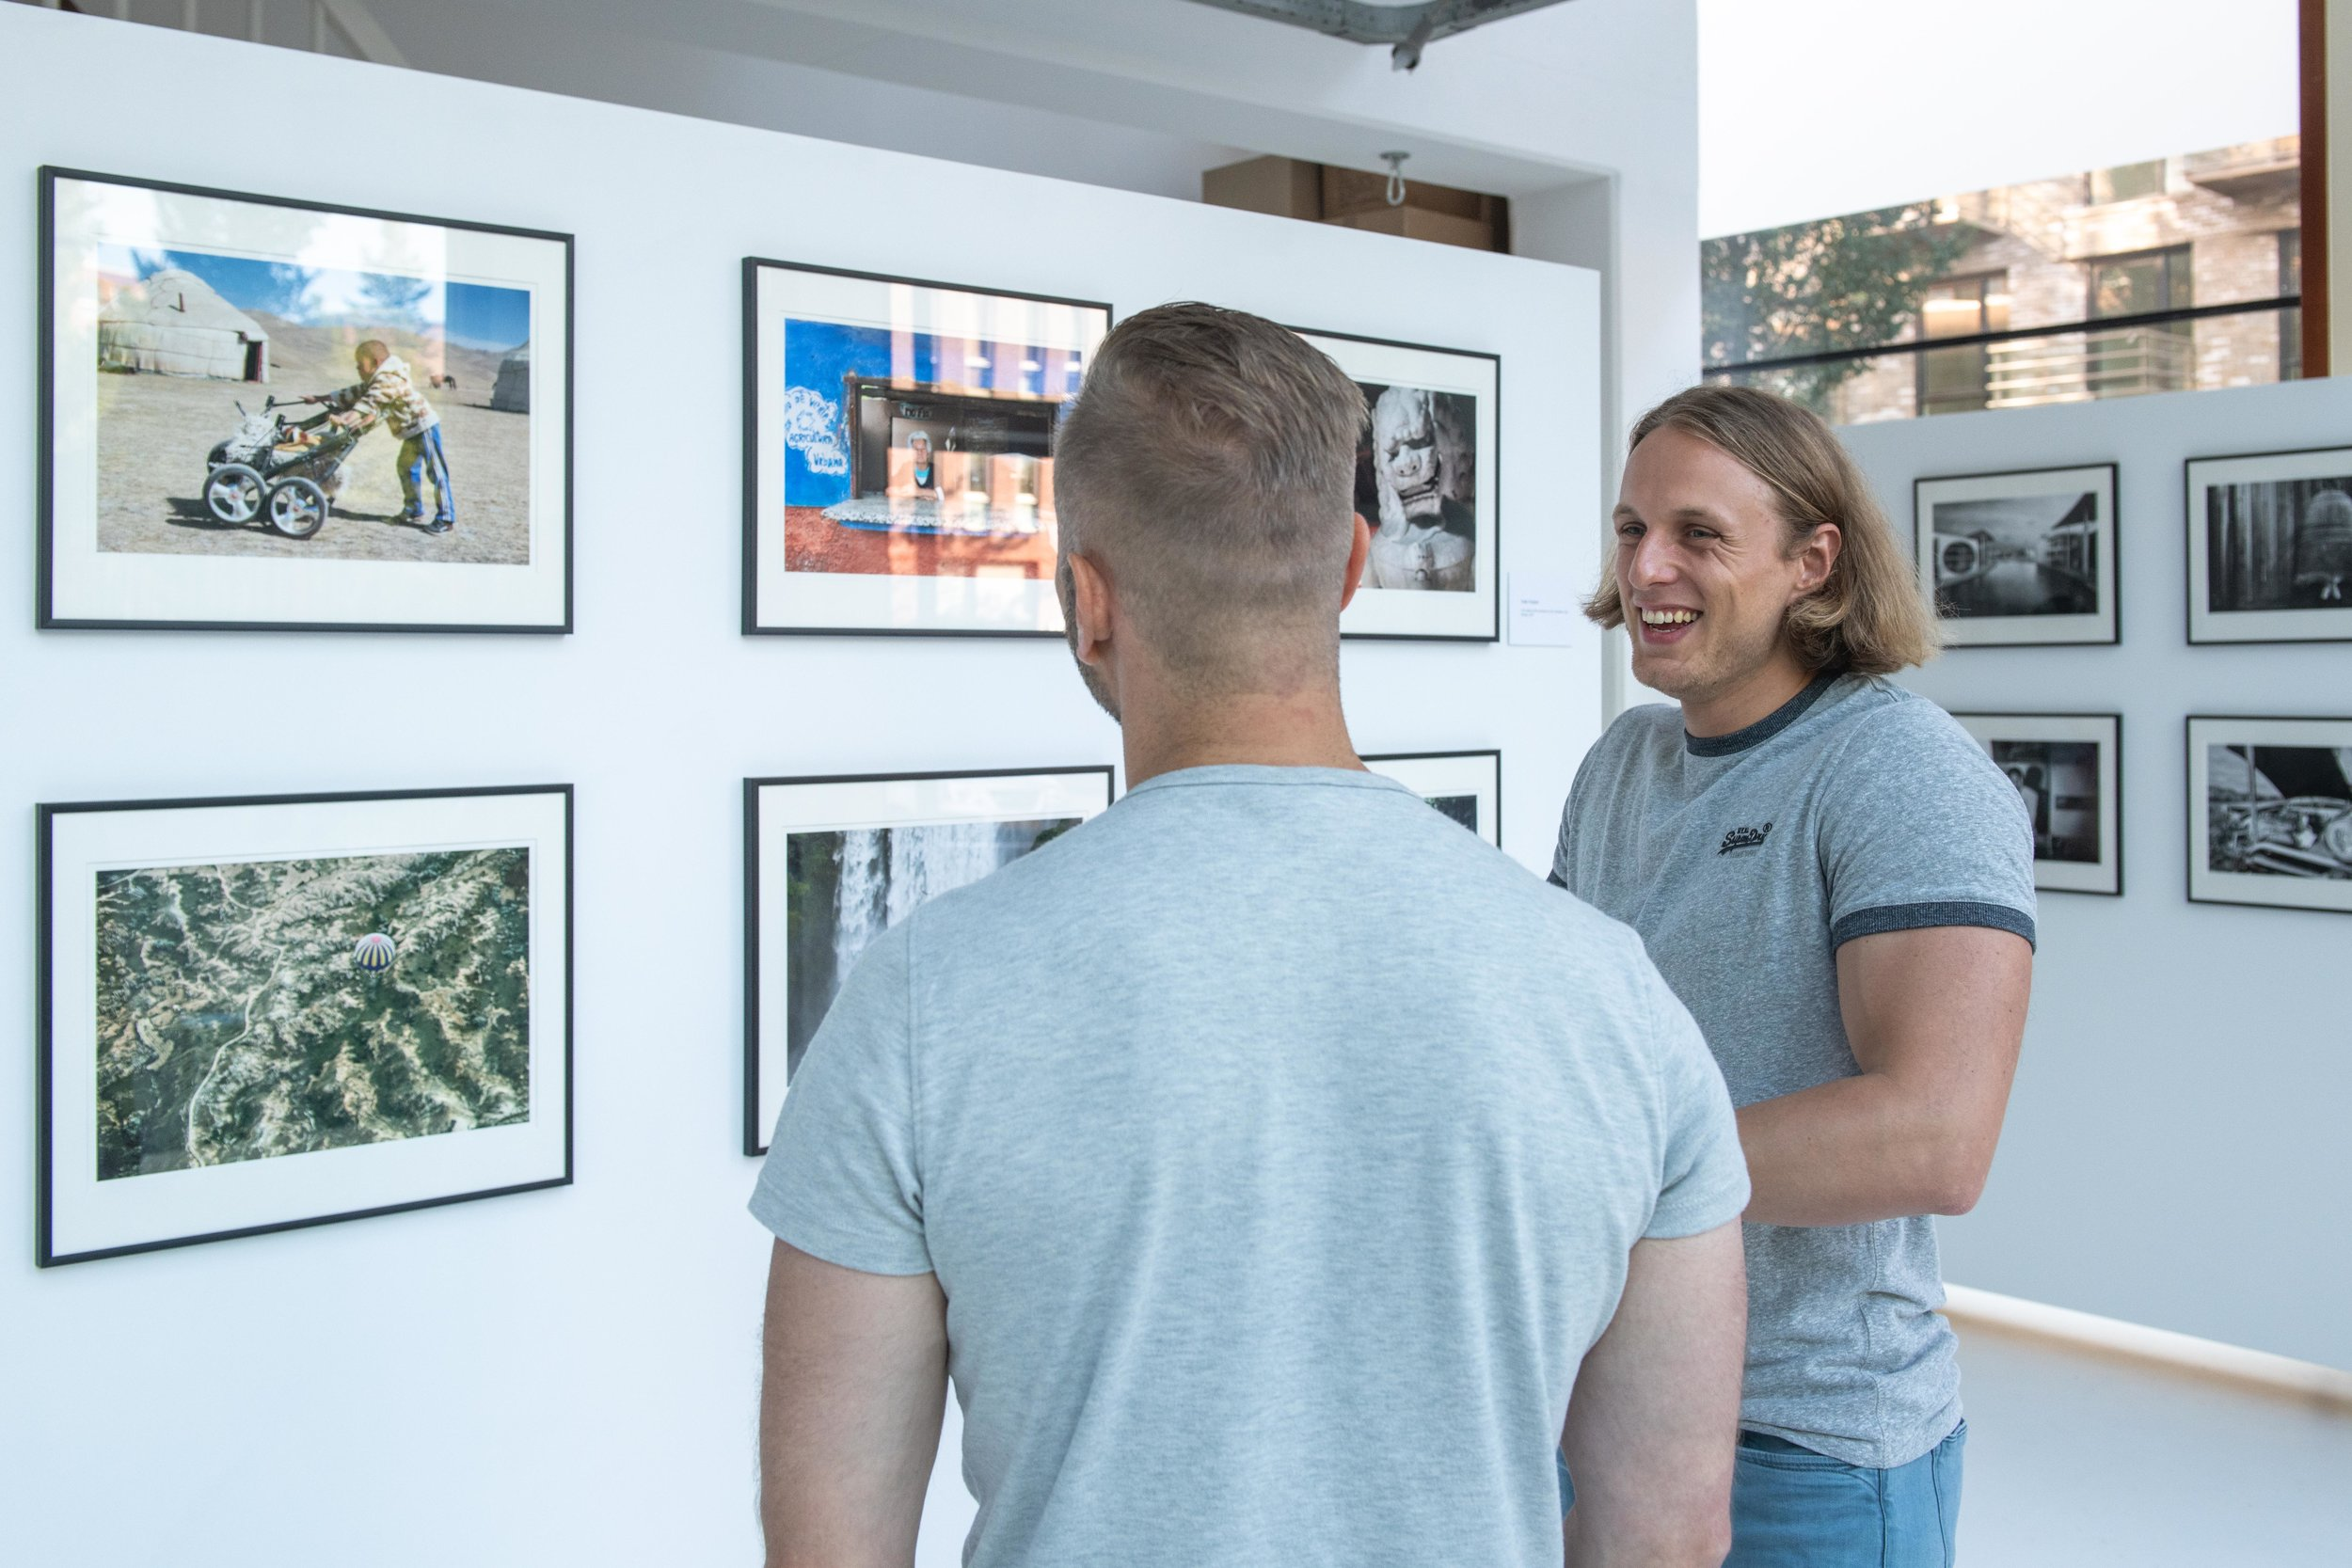 Gallery Space - A large, light space available for exhibitions and events.Learn More